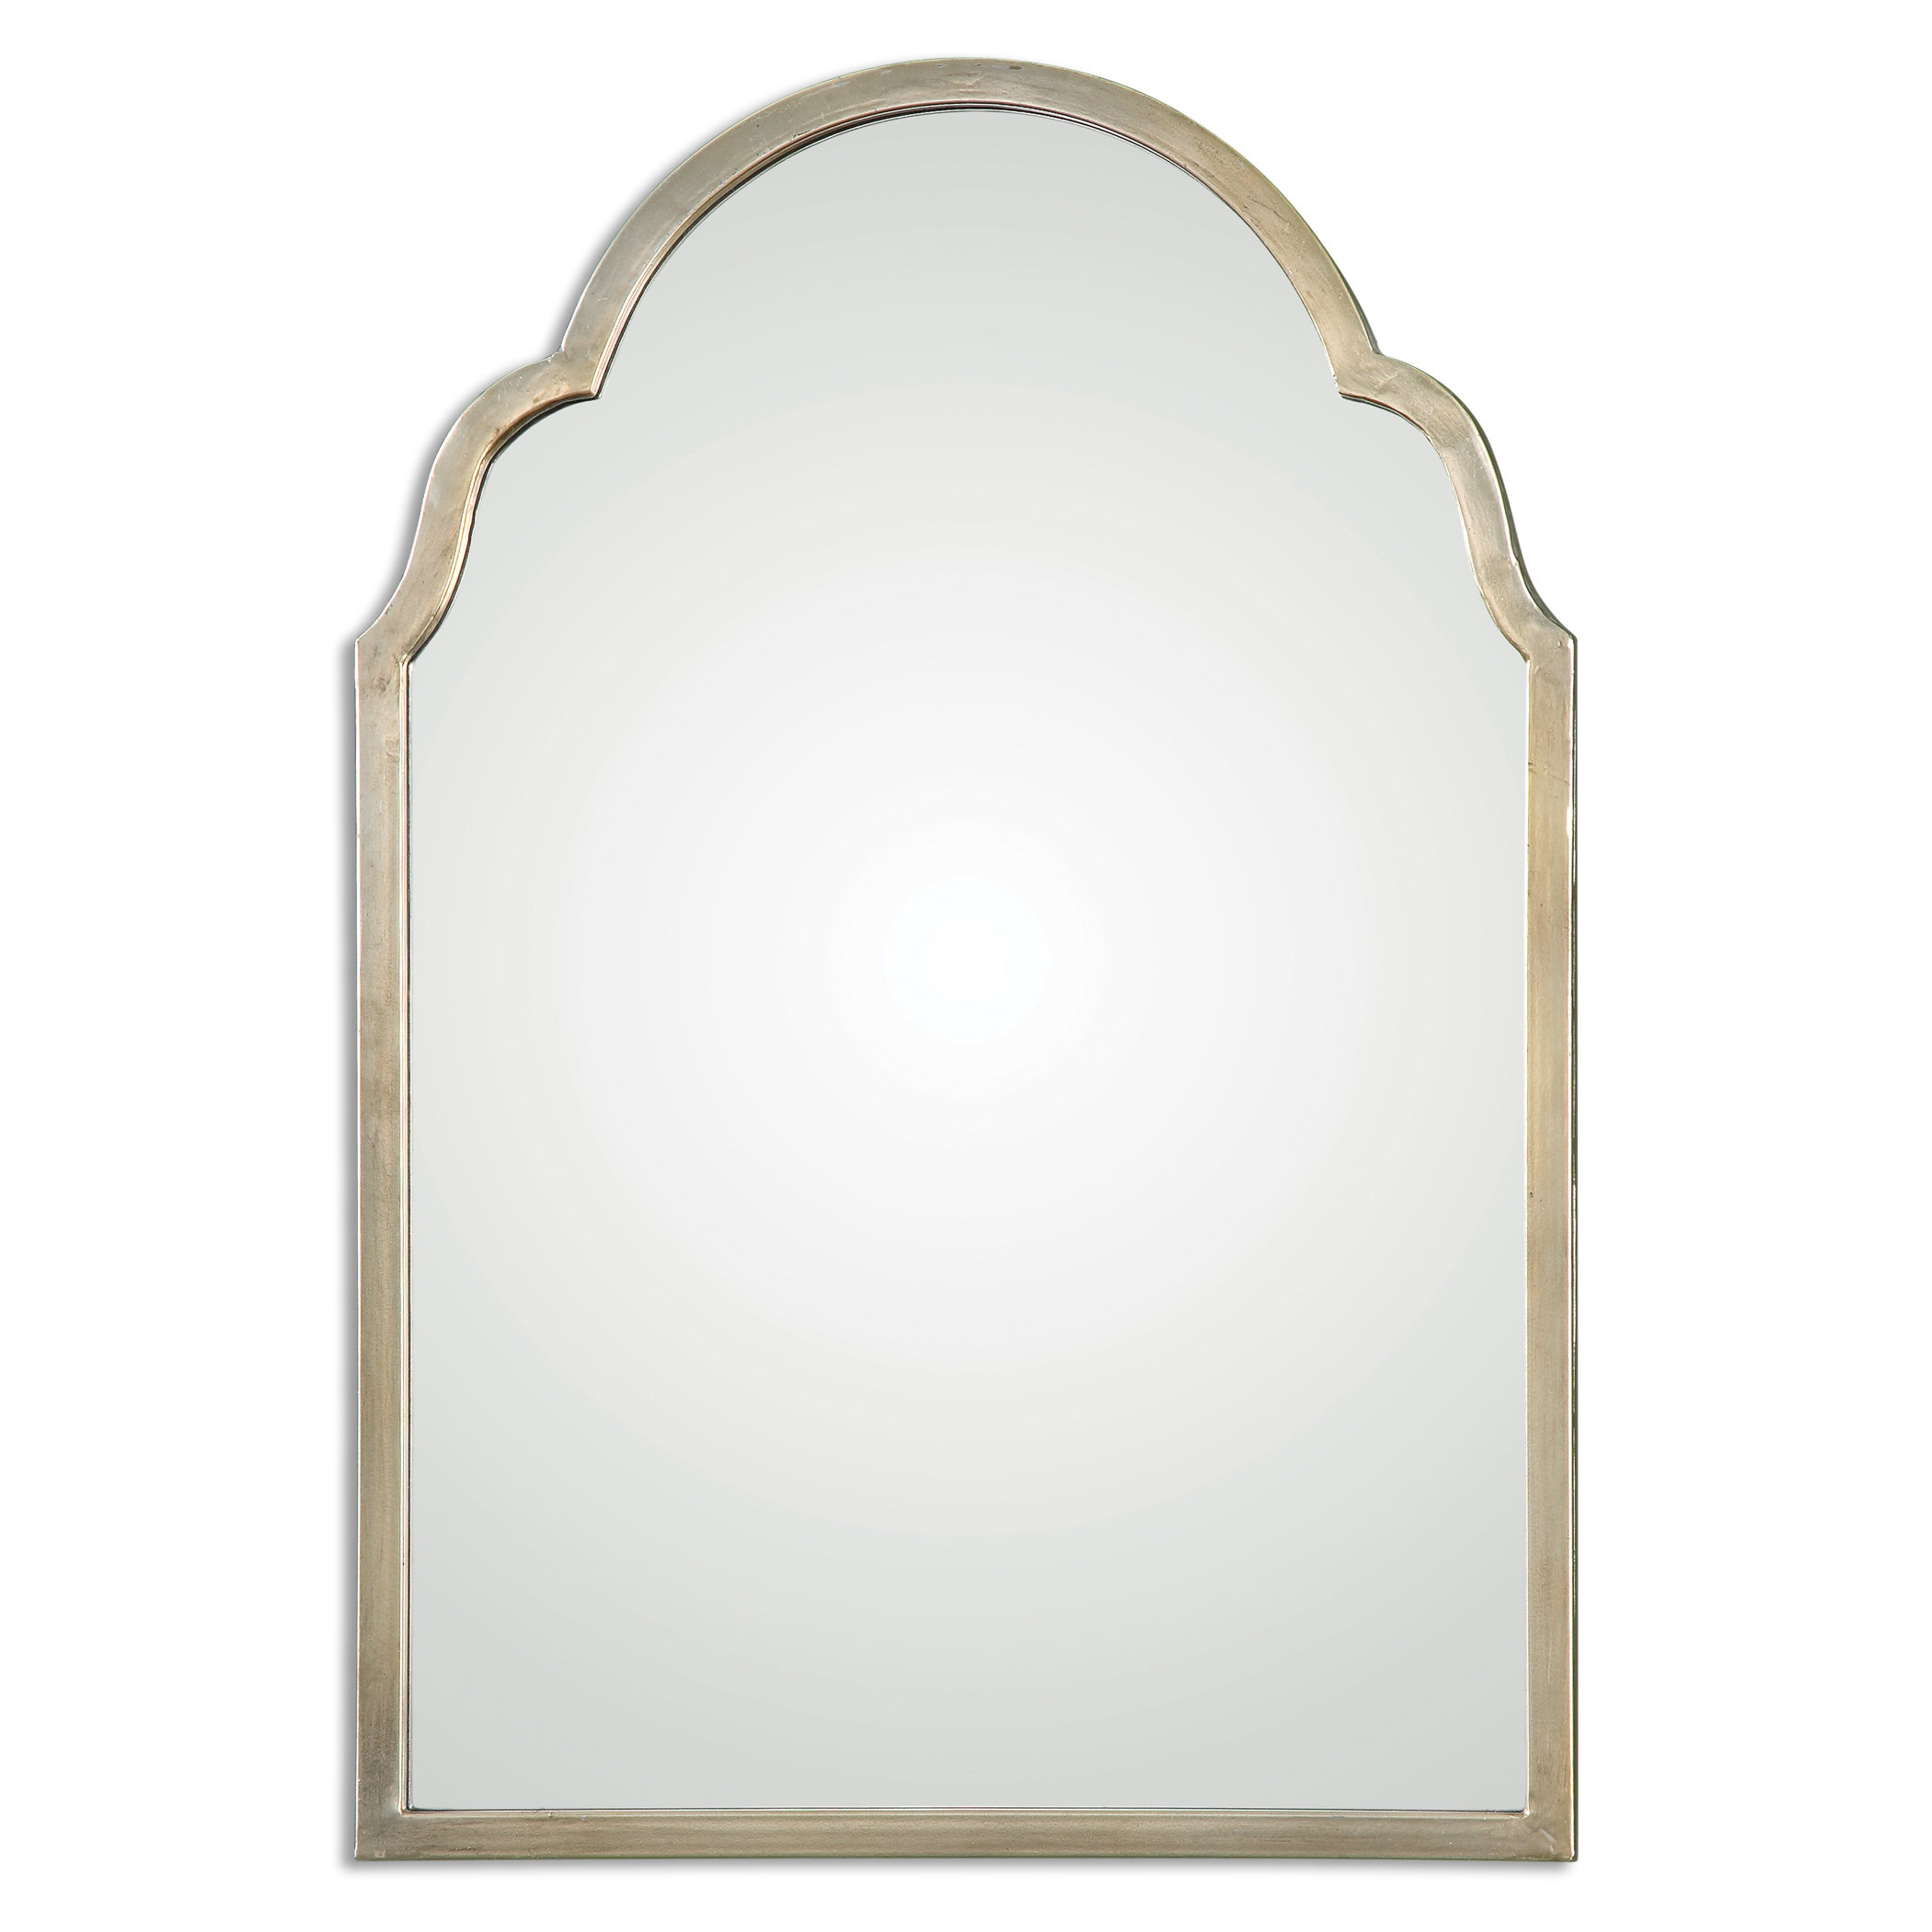 Farmhouse & Rustic Arch / Crowned Top Wall & Accent Mirrors Regarding Ekaterina Arch/crowned Top Wall Mirrors (View 13 of 30)